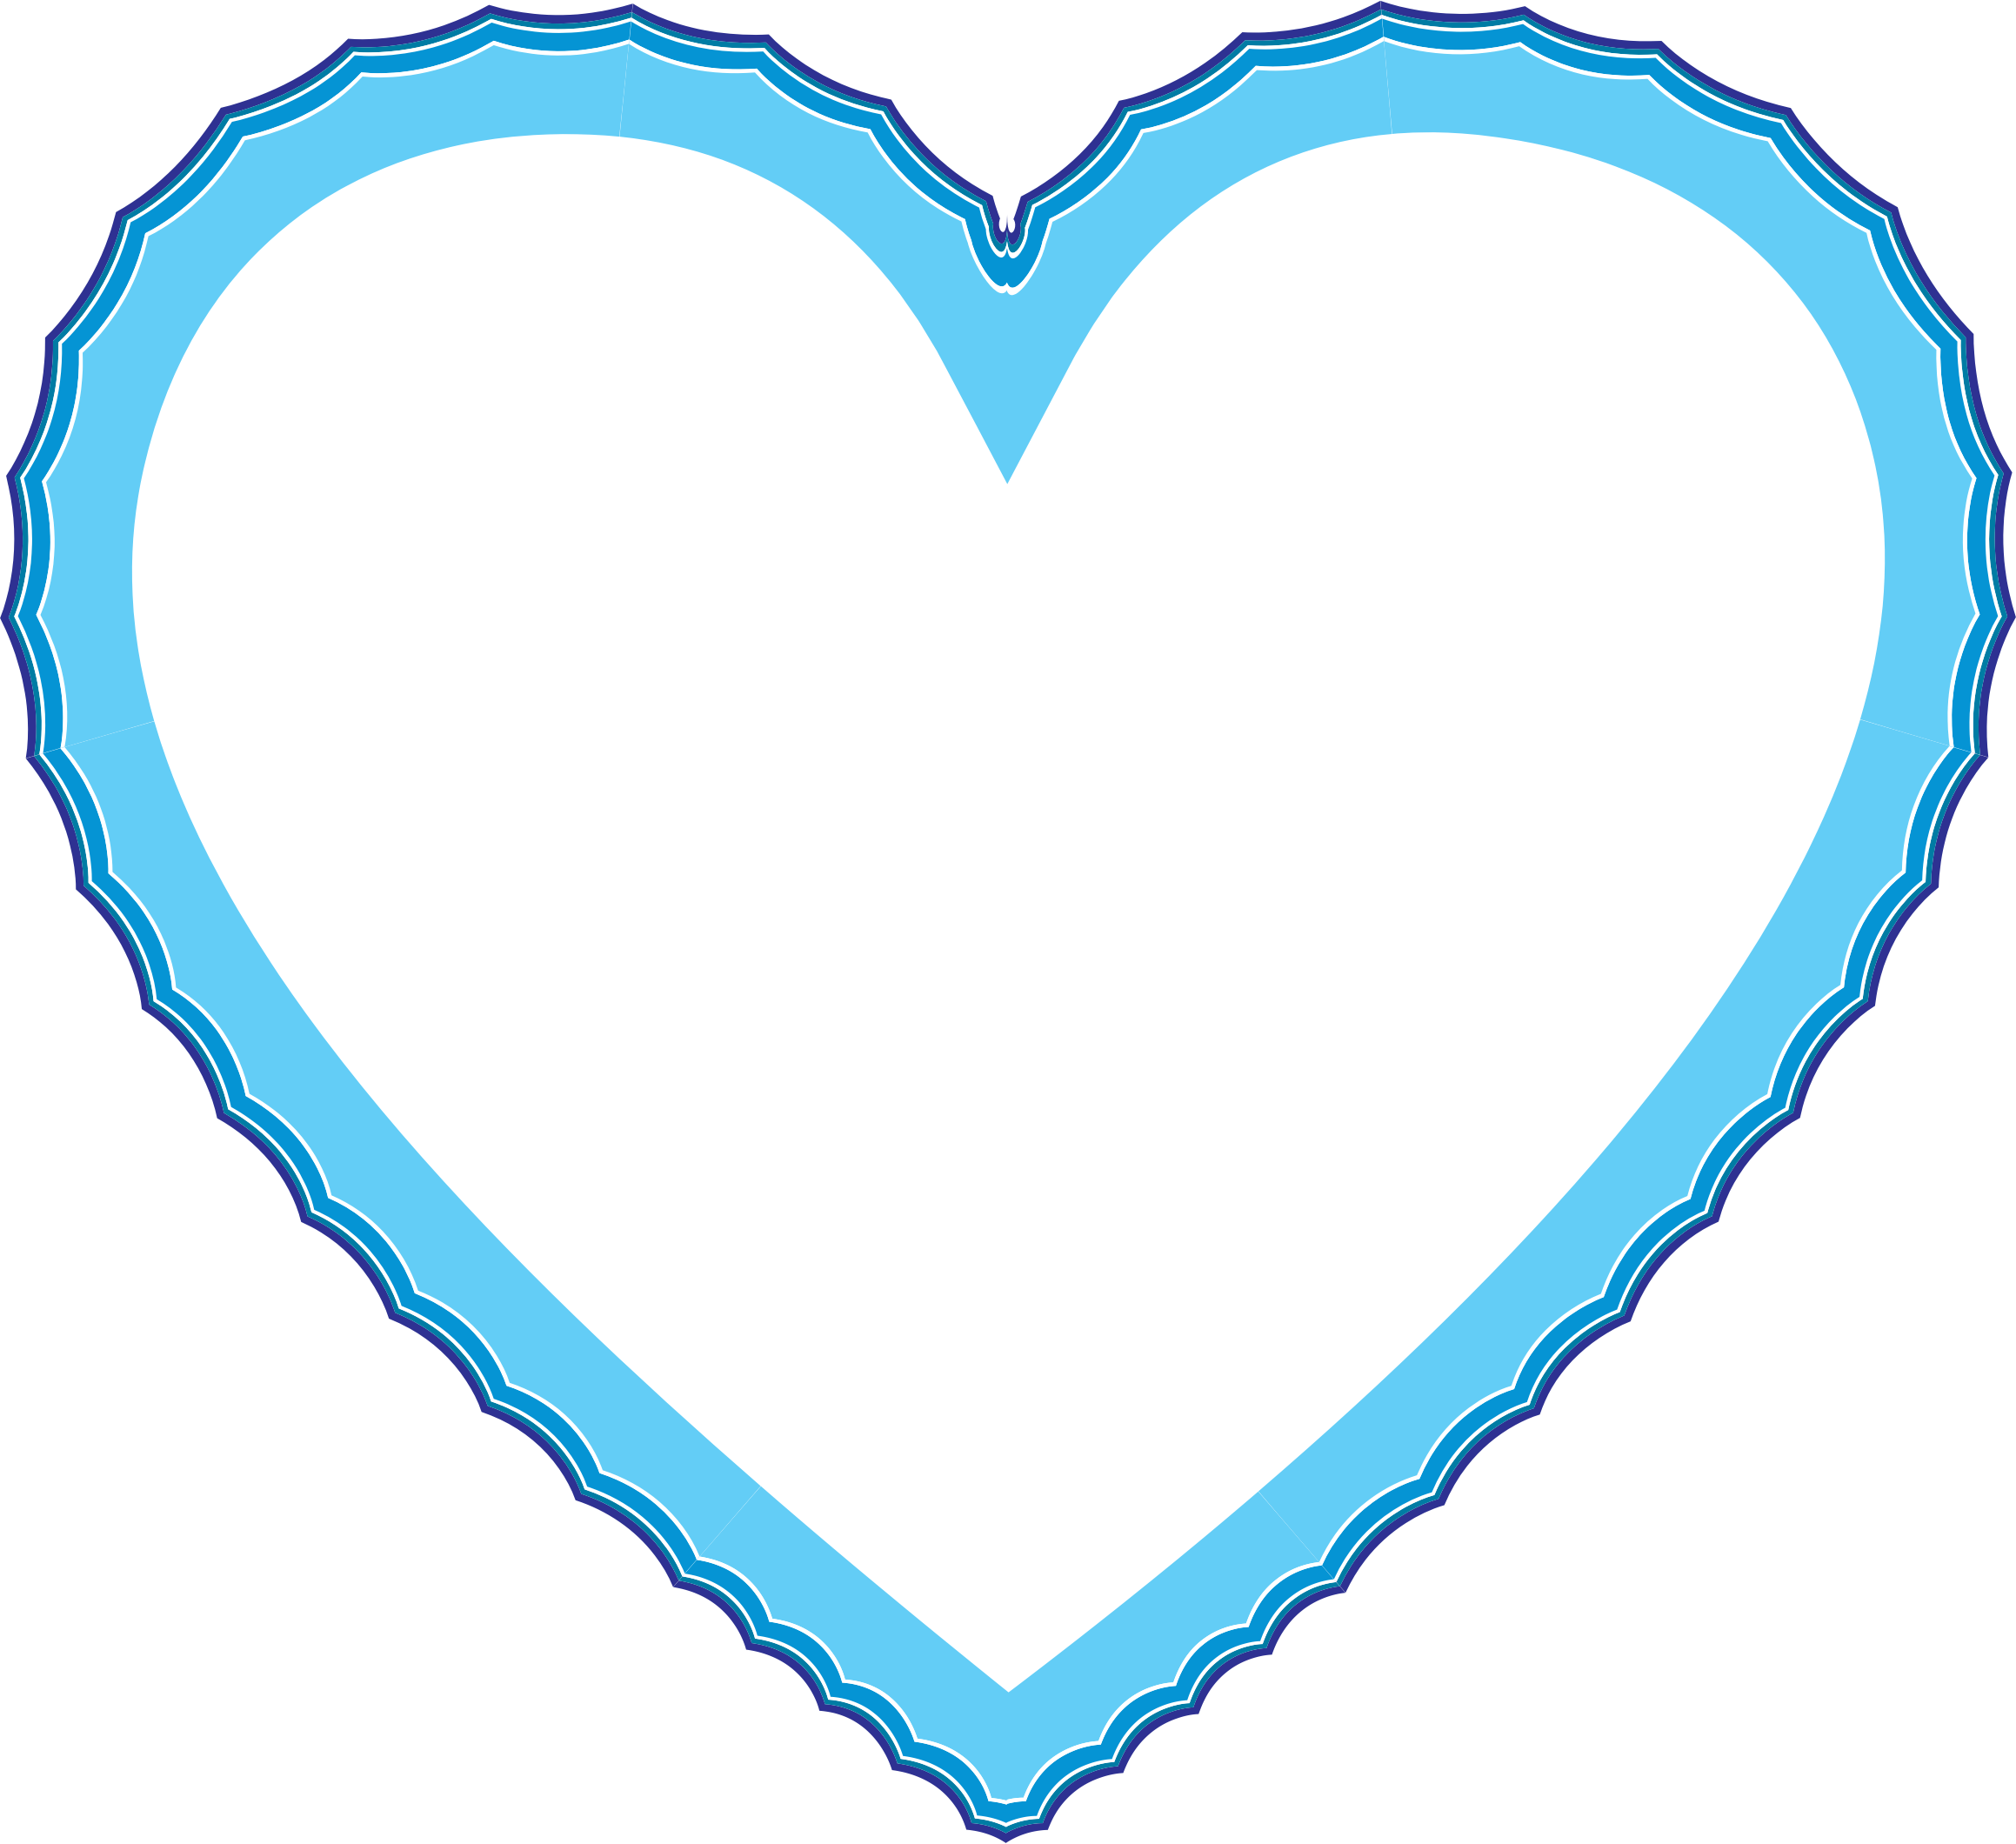 Waves frame big image. Heart clipart water png freeuse stock